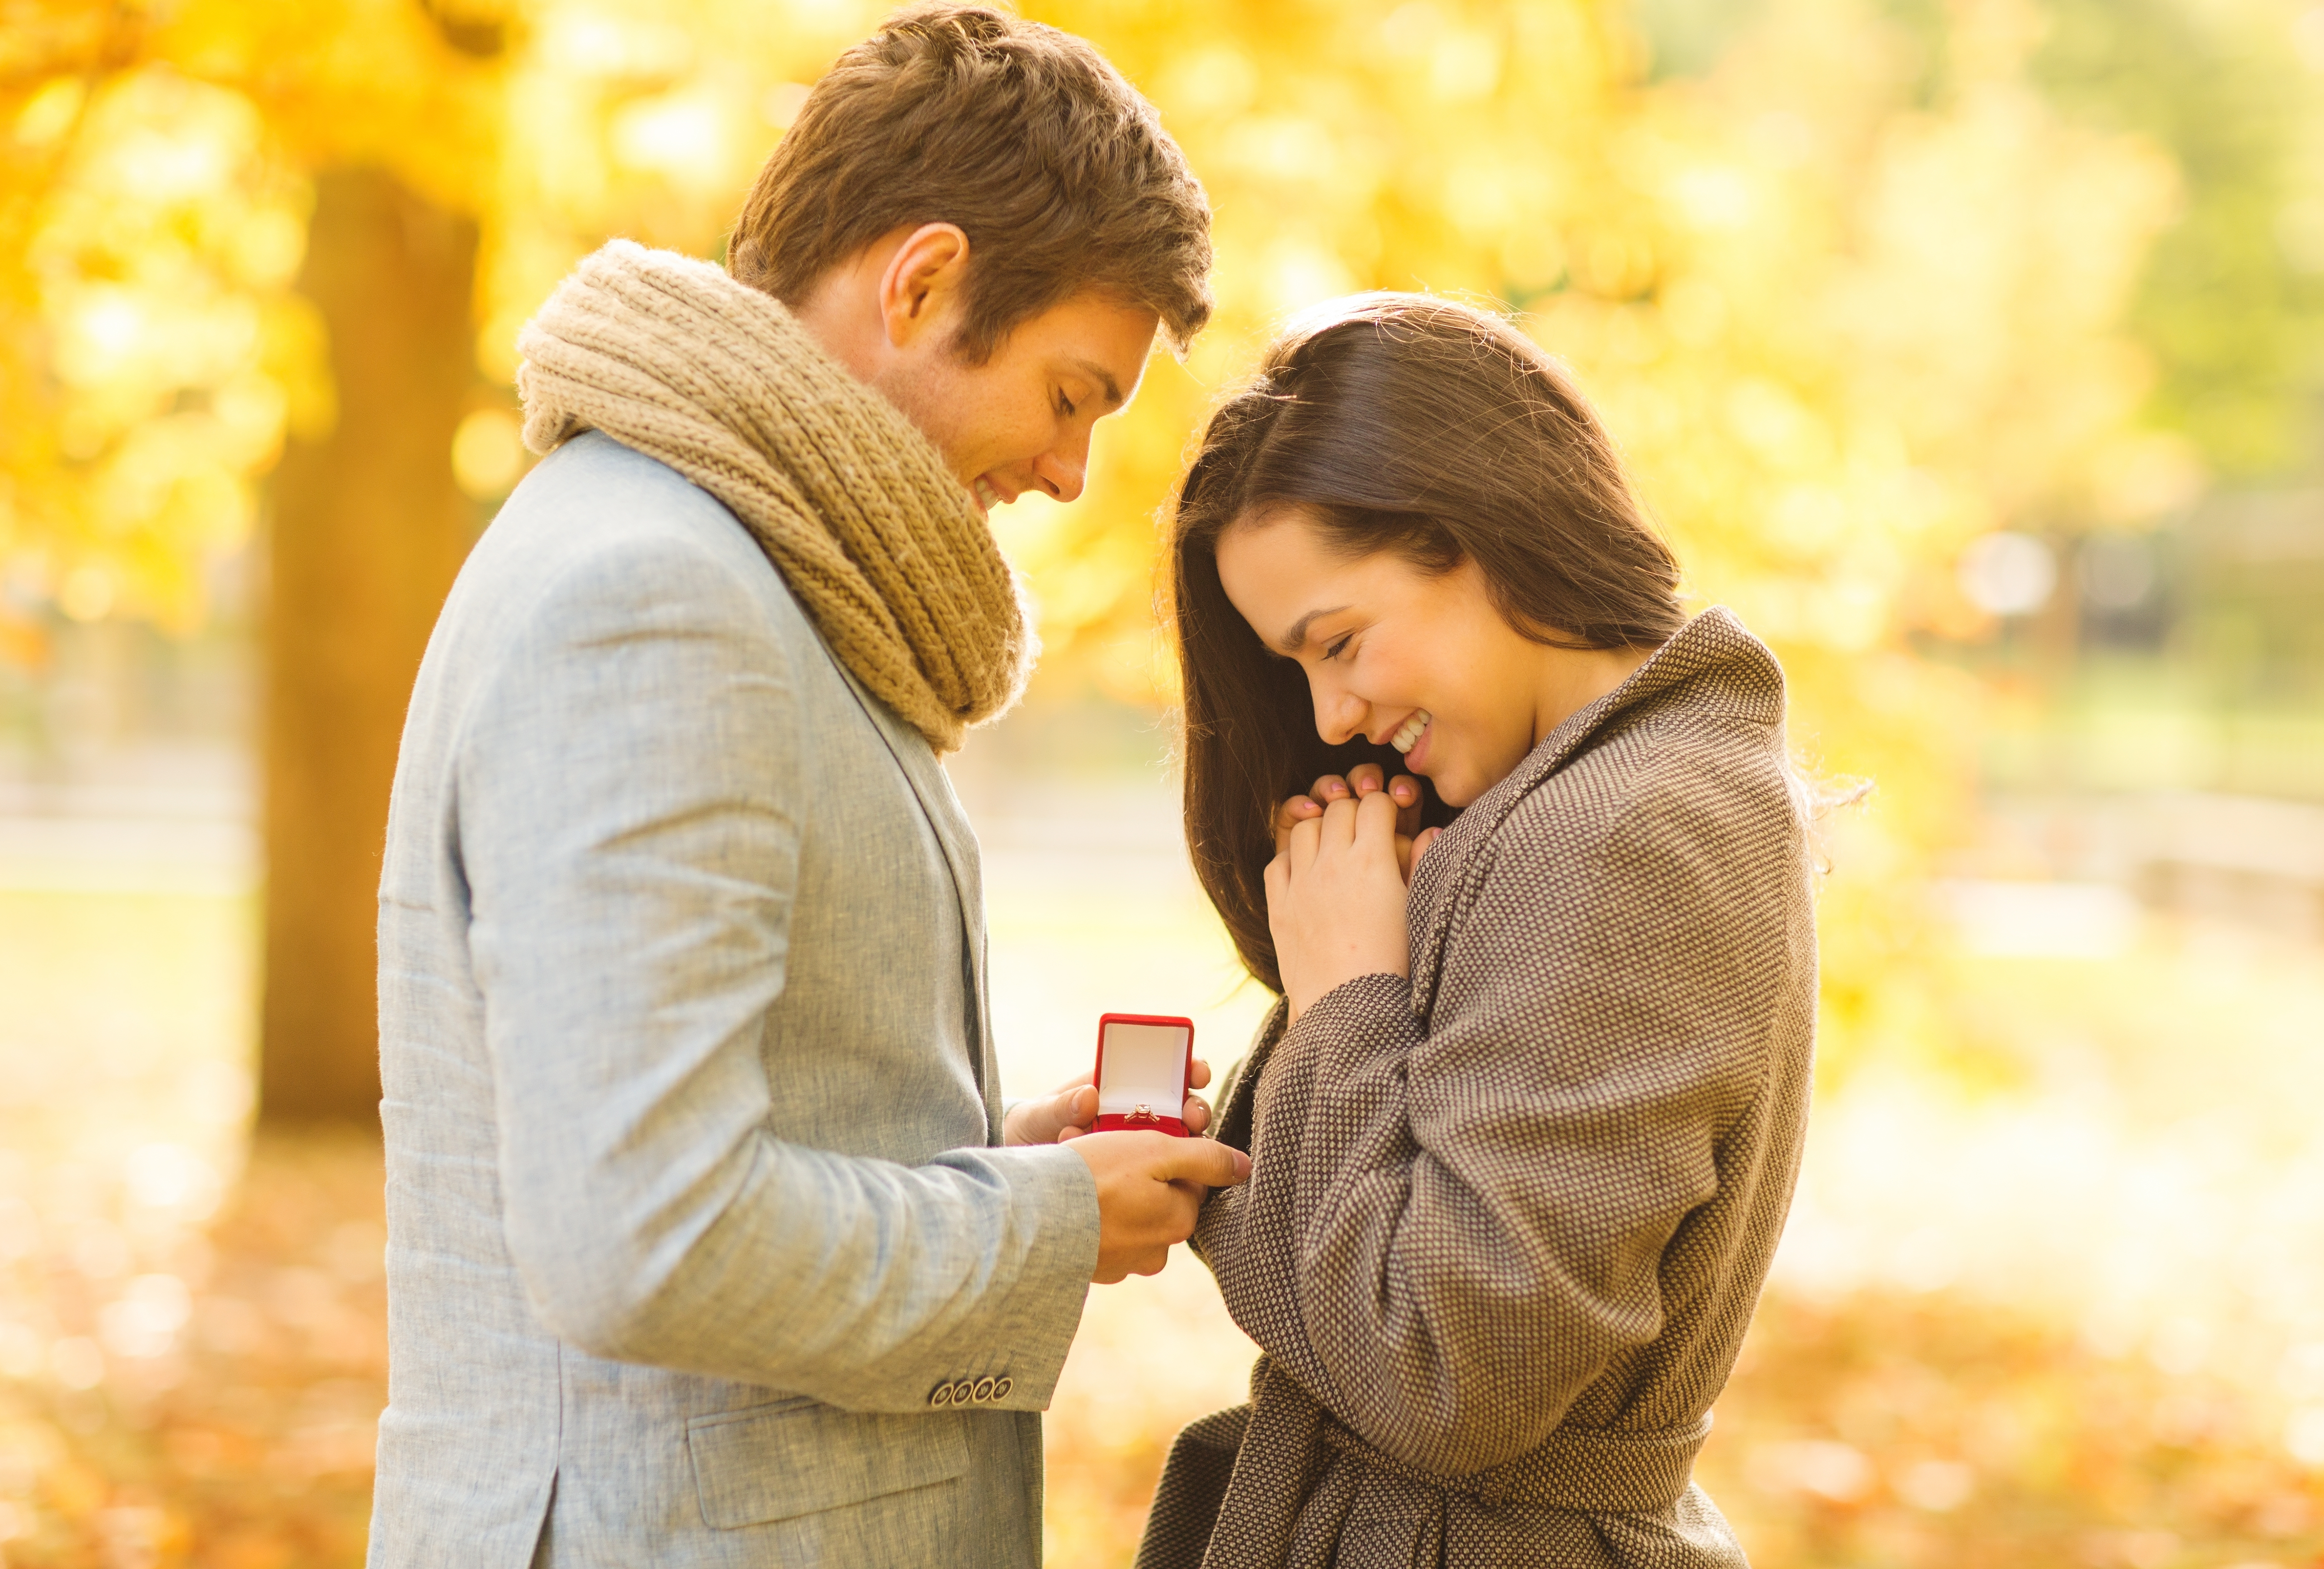 finding a marriage partner